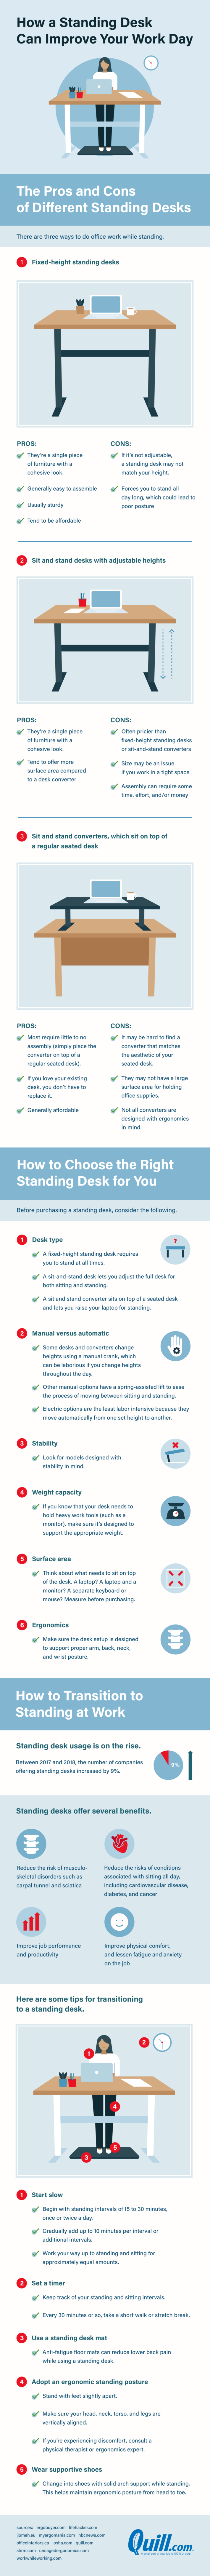 The benefits of standing desks to improve your workday [Visual] | ecogreenlove